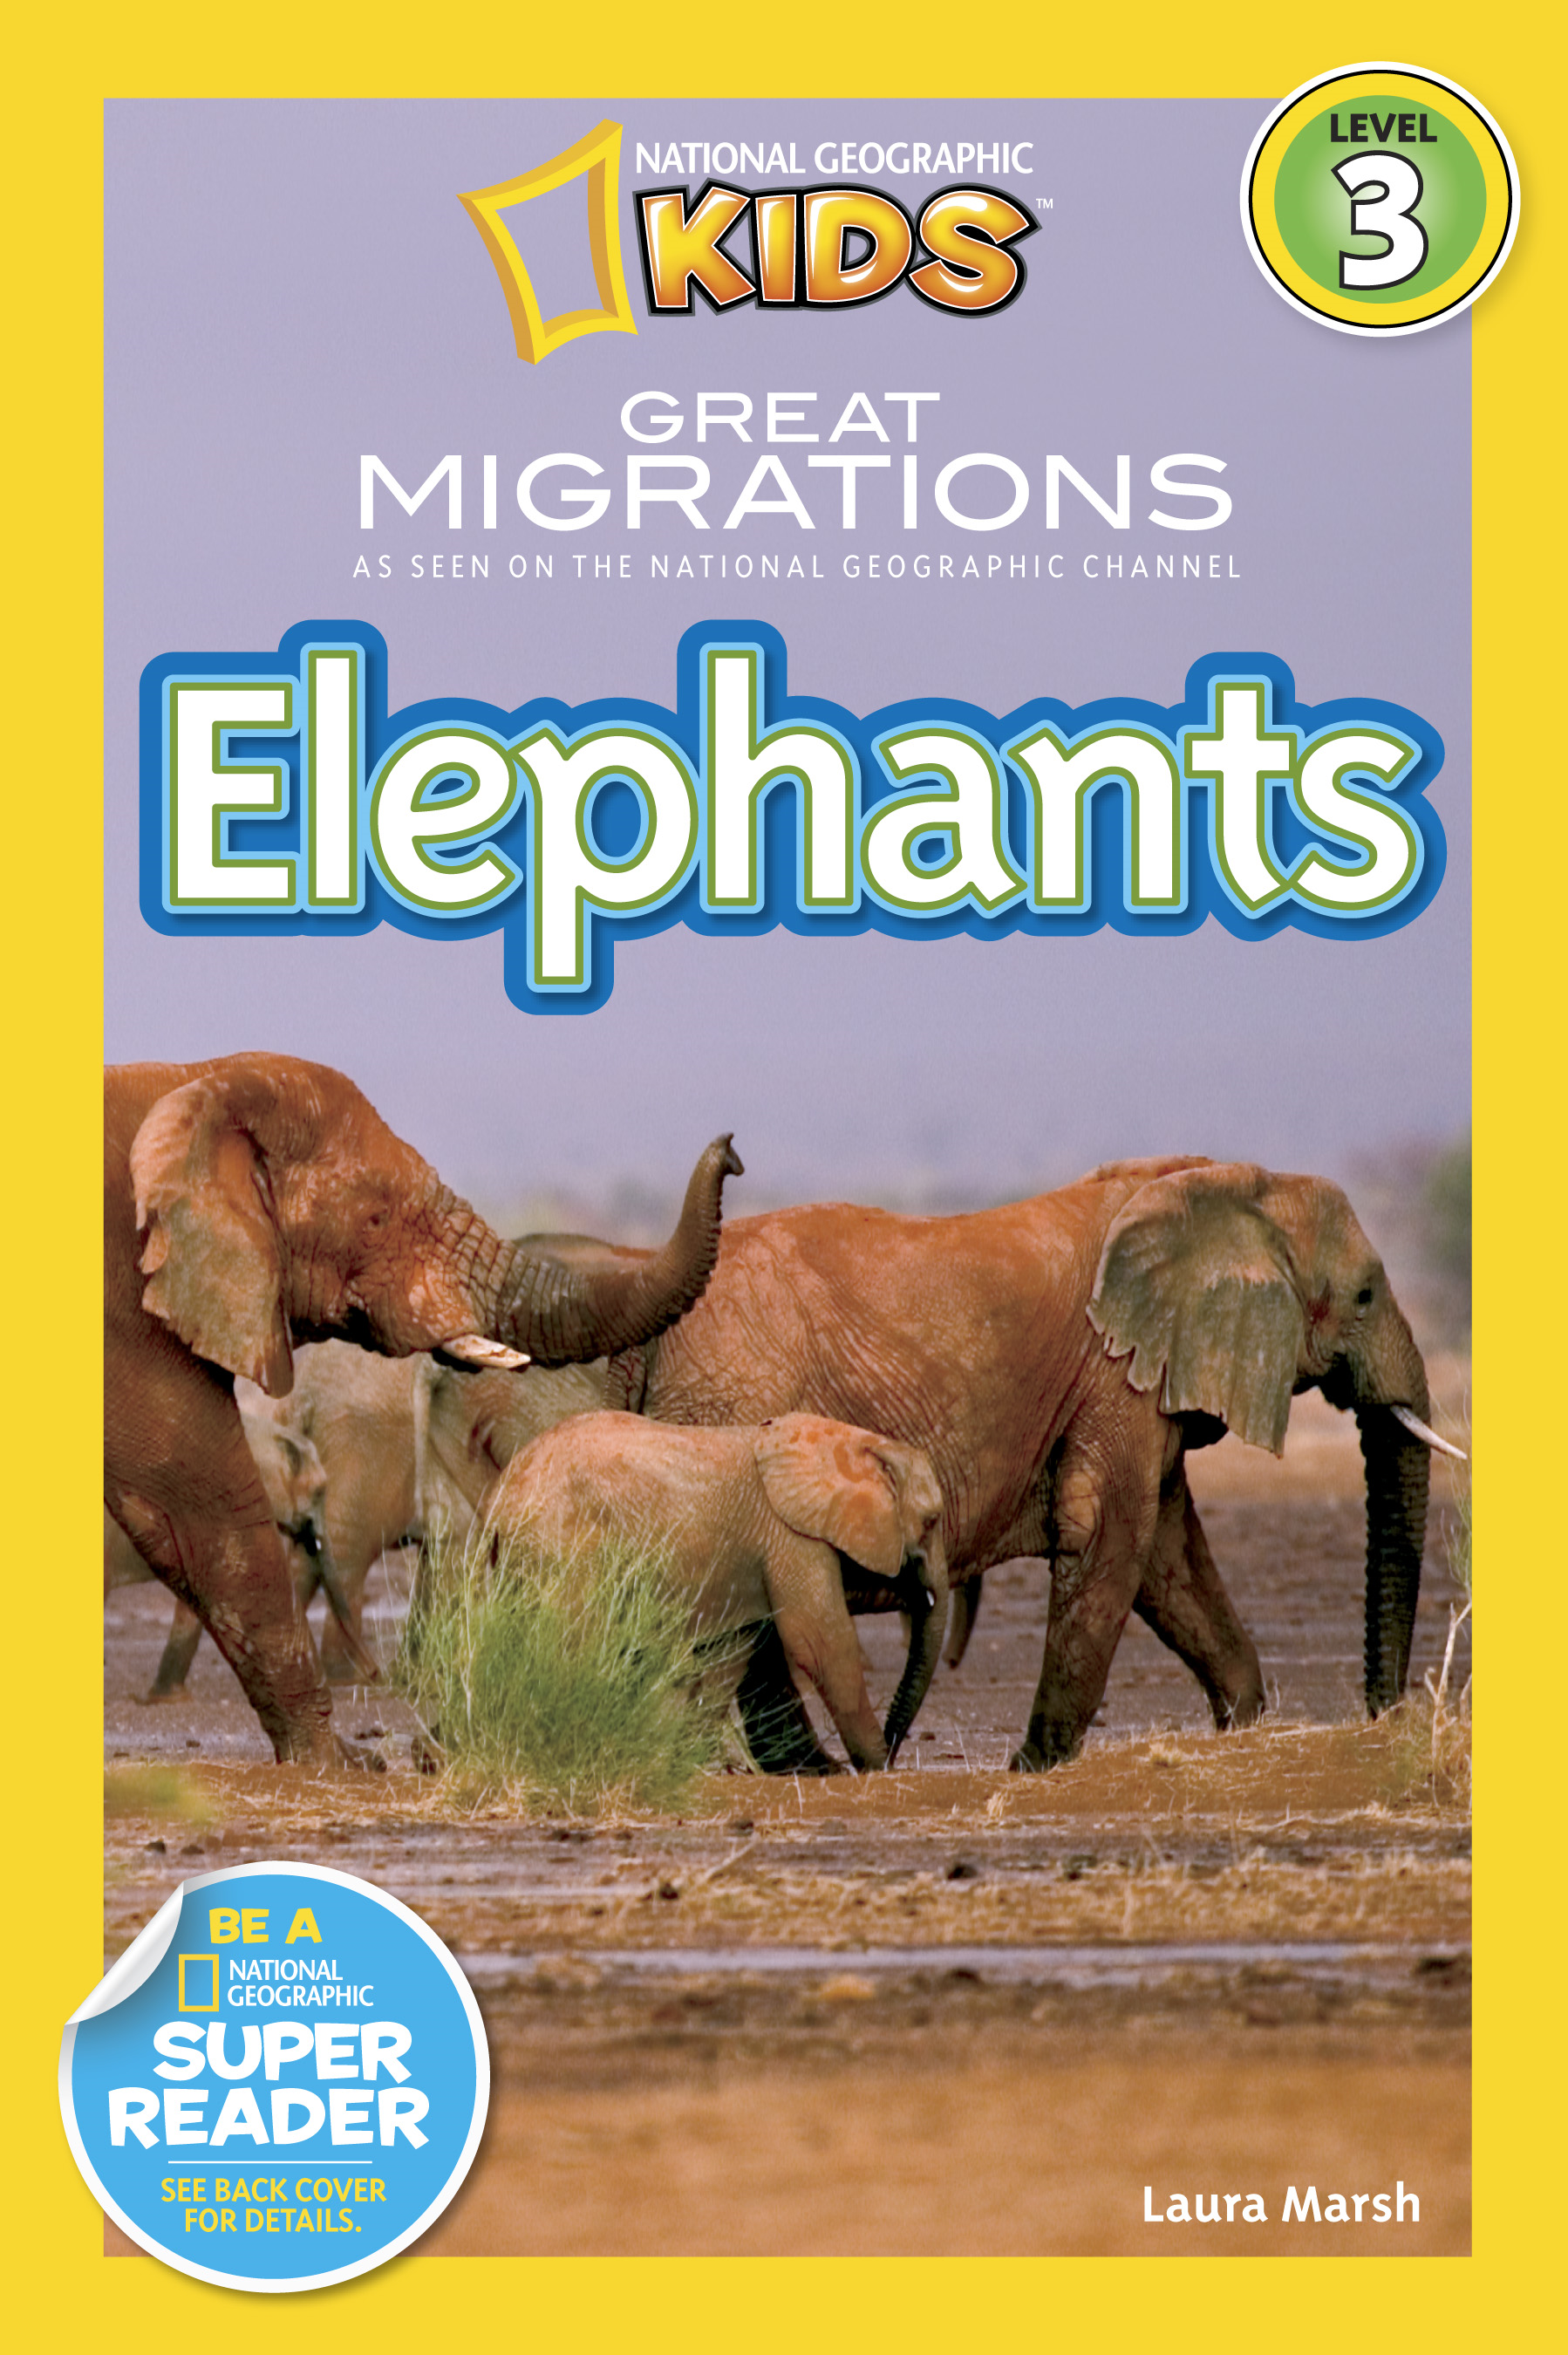 National Geographic Readers: Great Migrations Elephants By: Laura Marsh